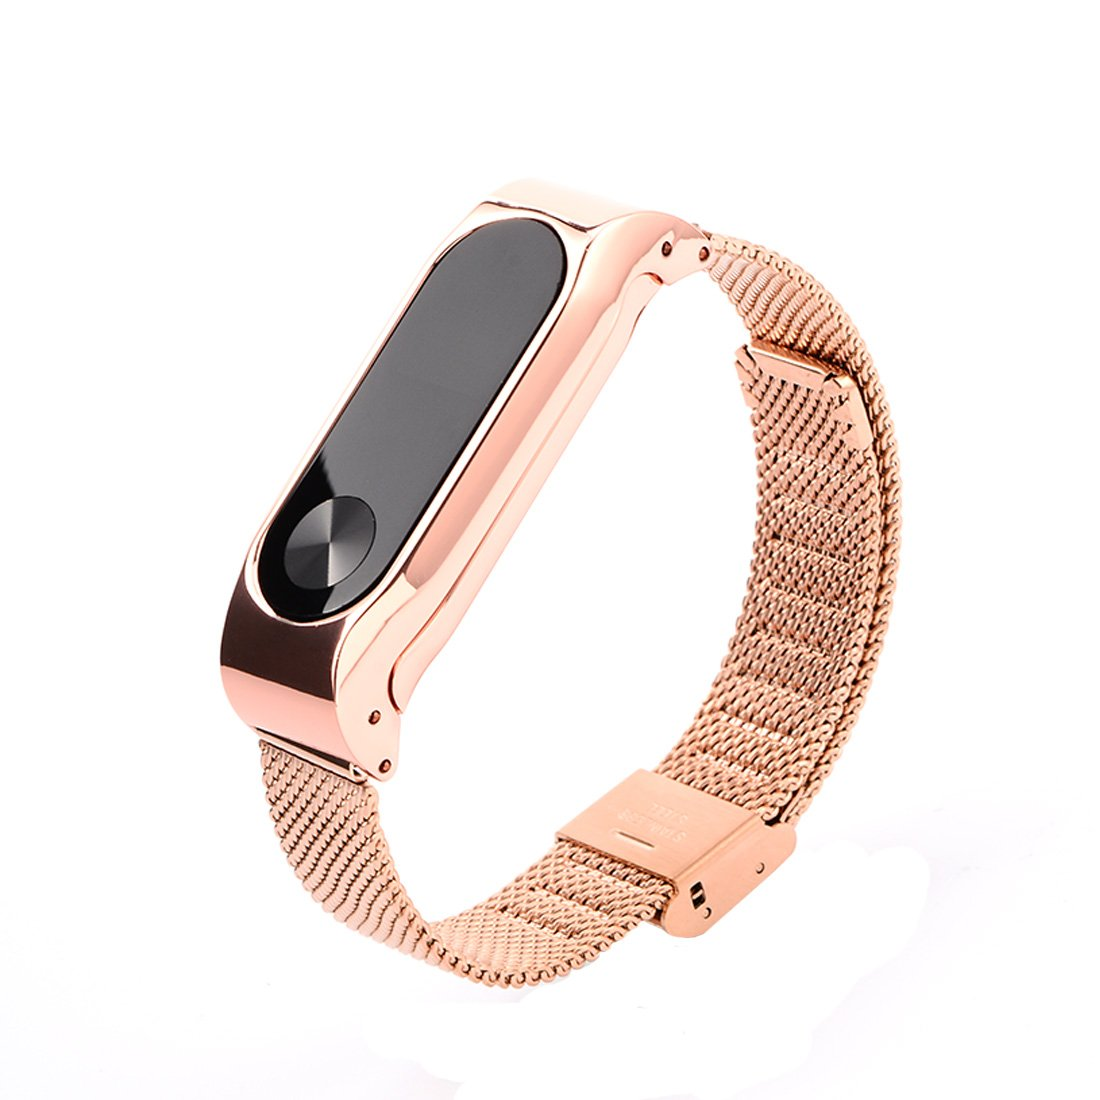 Ollivan Xiaomi Mi Band 2 Straps Fit Stainless Steel Metal Oled Replacement Strap Mijobs Silver Wrist Wristband Bracelet For Smart Miband Rose Gold